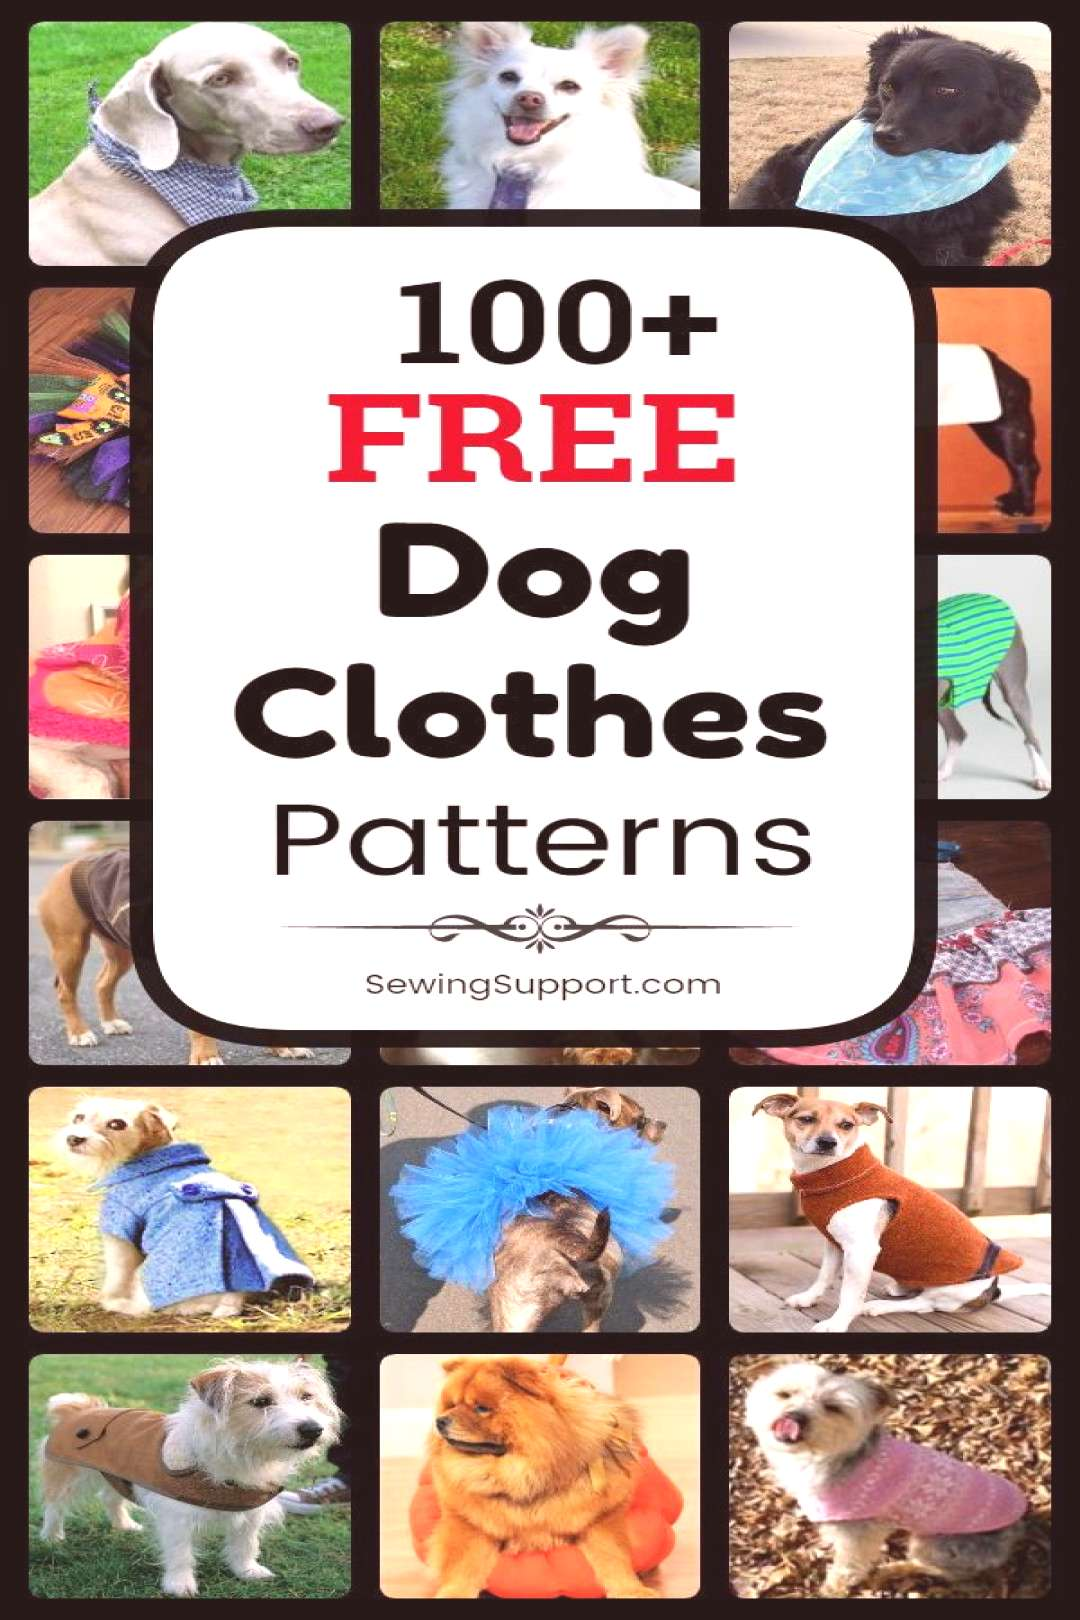 100+ Free Dog Clothes Patterns Dog Clothes DIY. 100+ free dog clothes patterns, tutorials, and diy